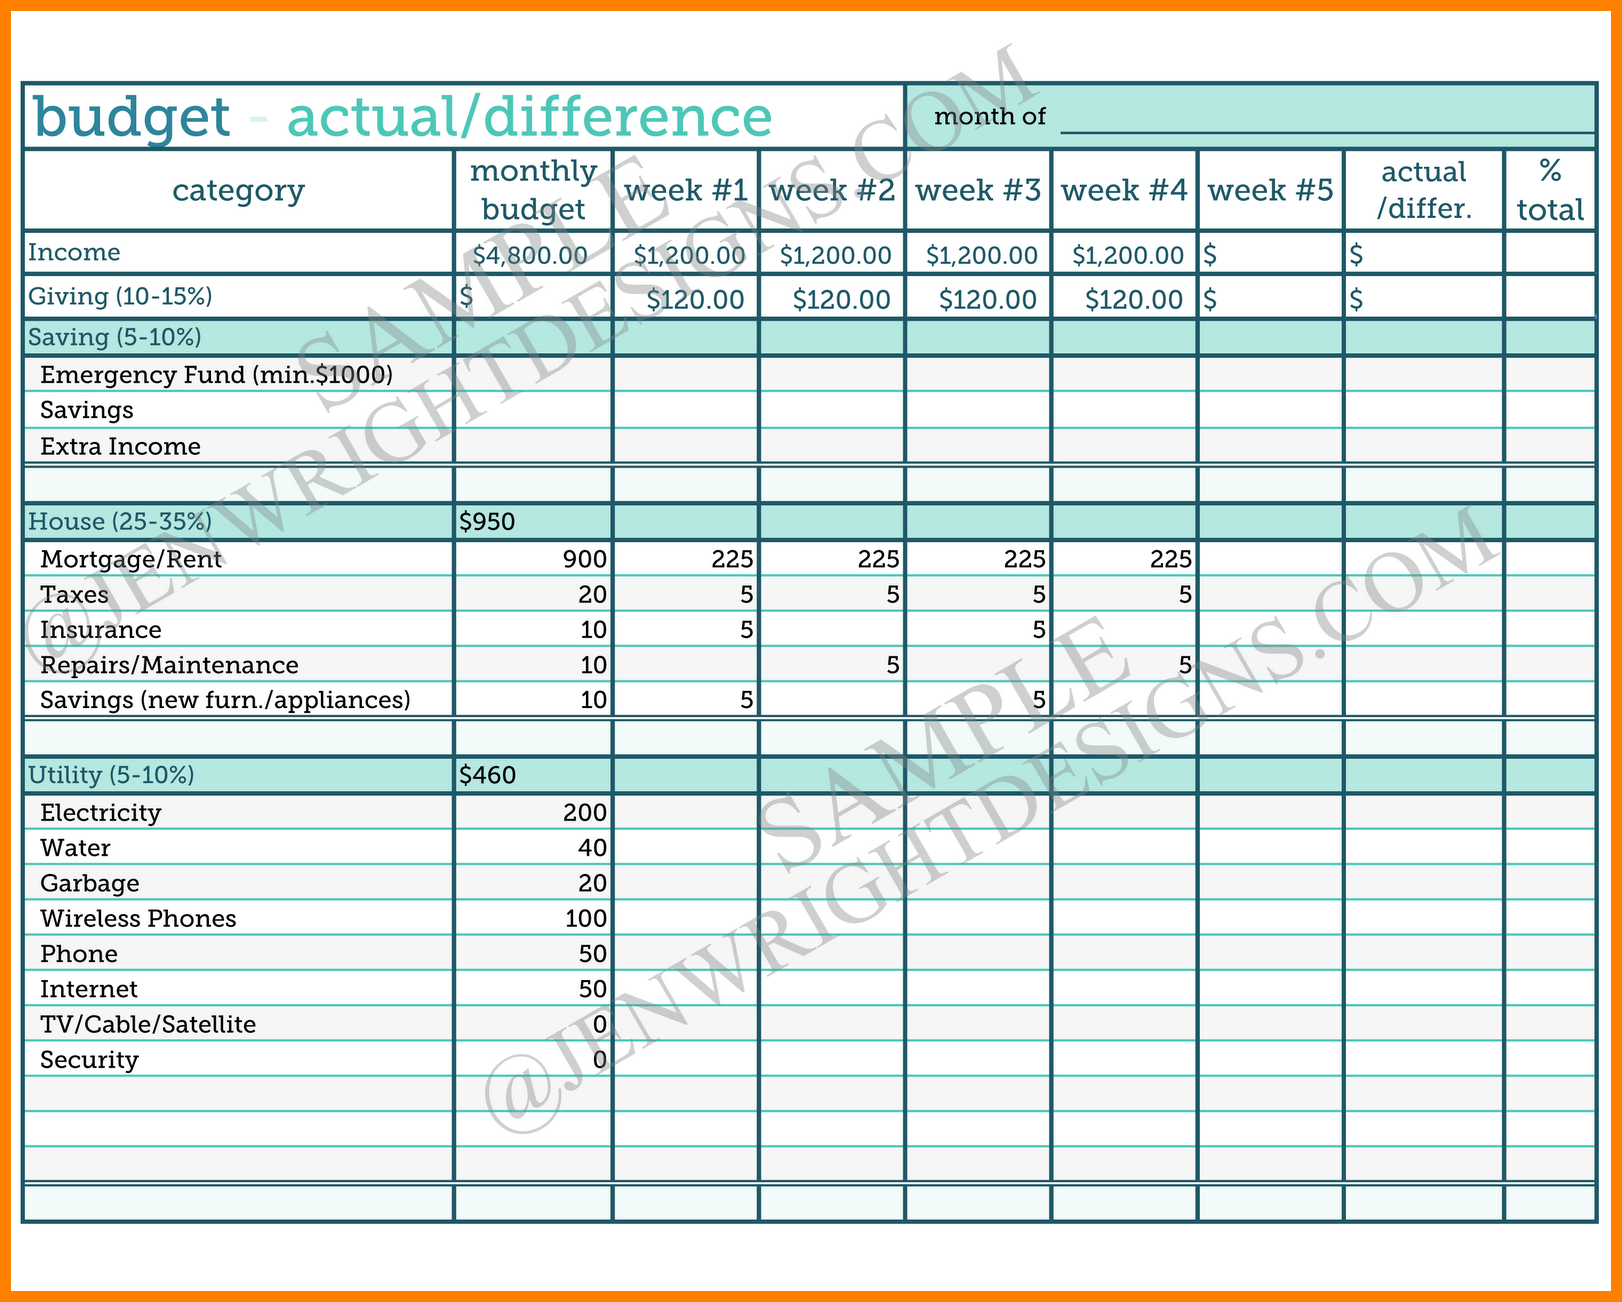 Worksheets Sample Budget Worksheet free sample budget worksheet printable natural buff dog household templates samples of spreadsheets in excel